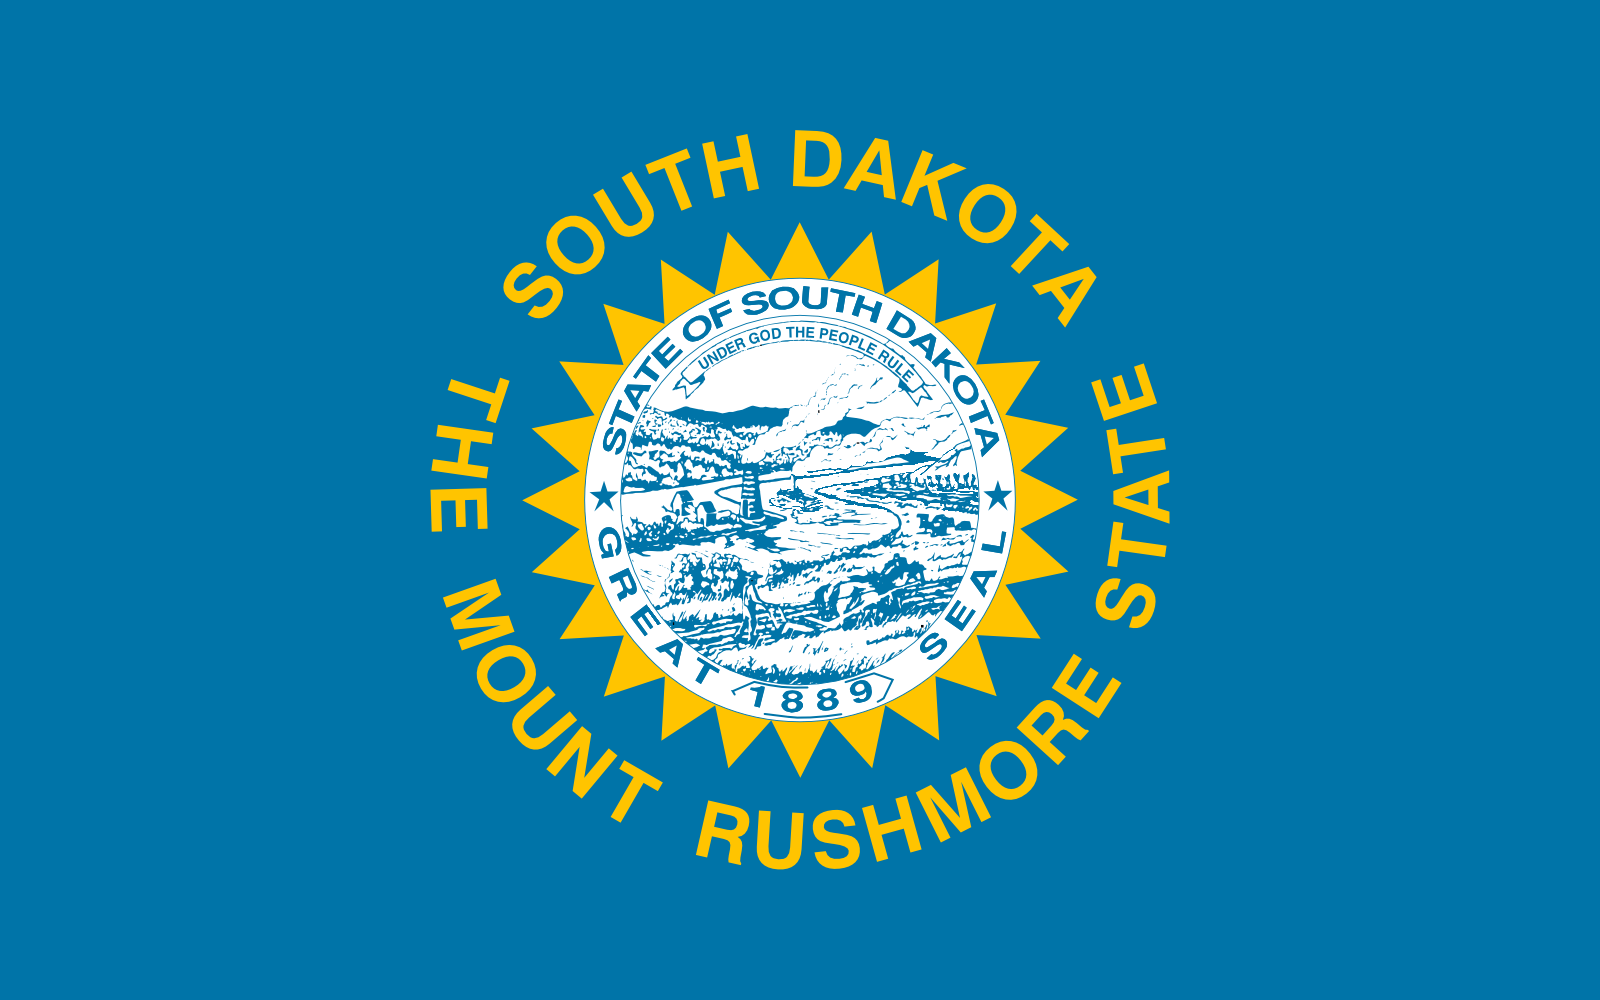 Who is the patron saint of the great state of South Dakota?